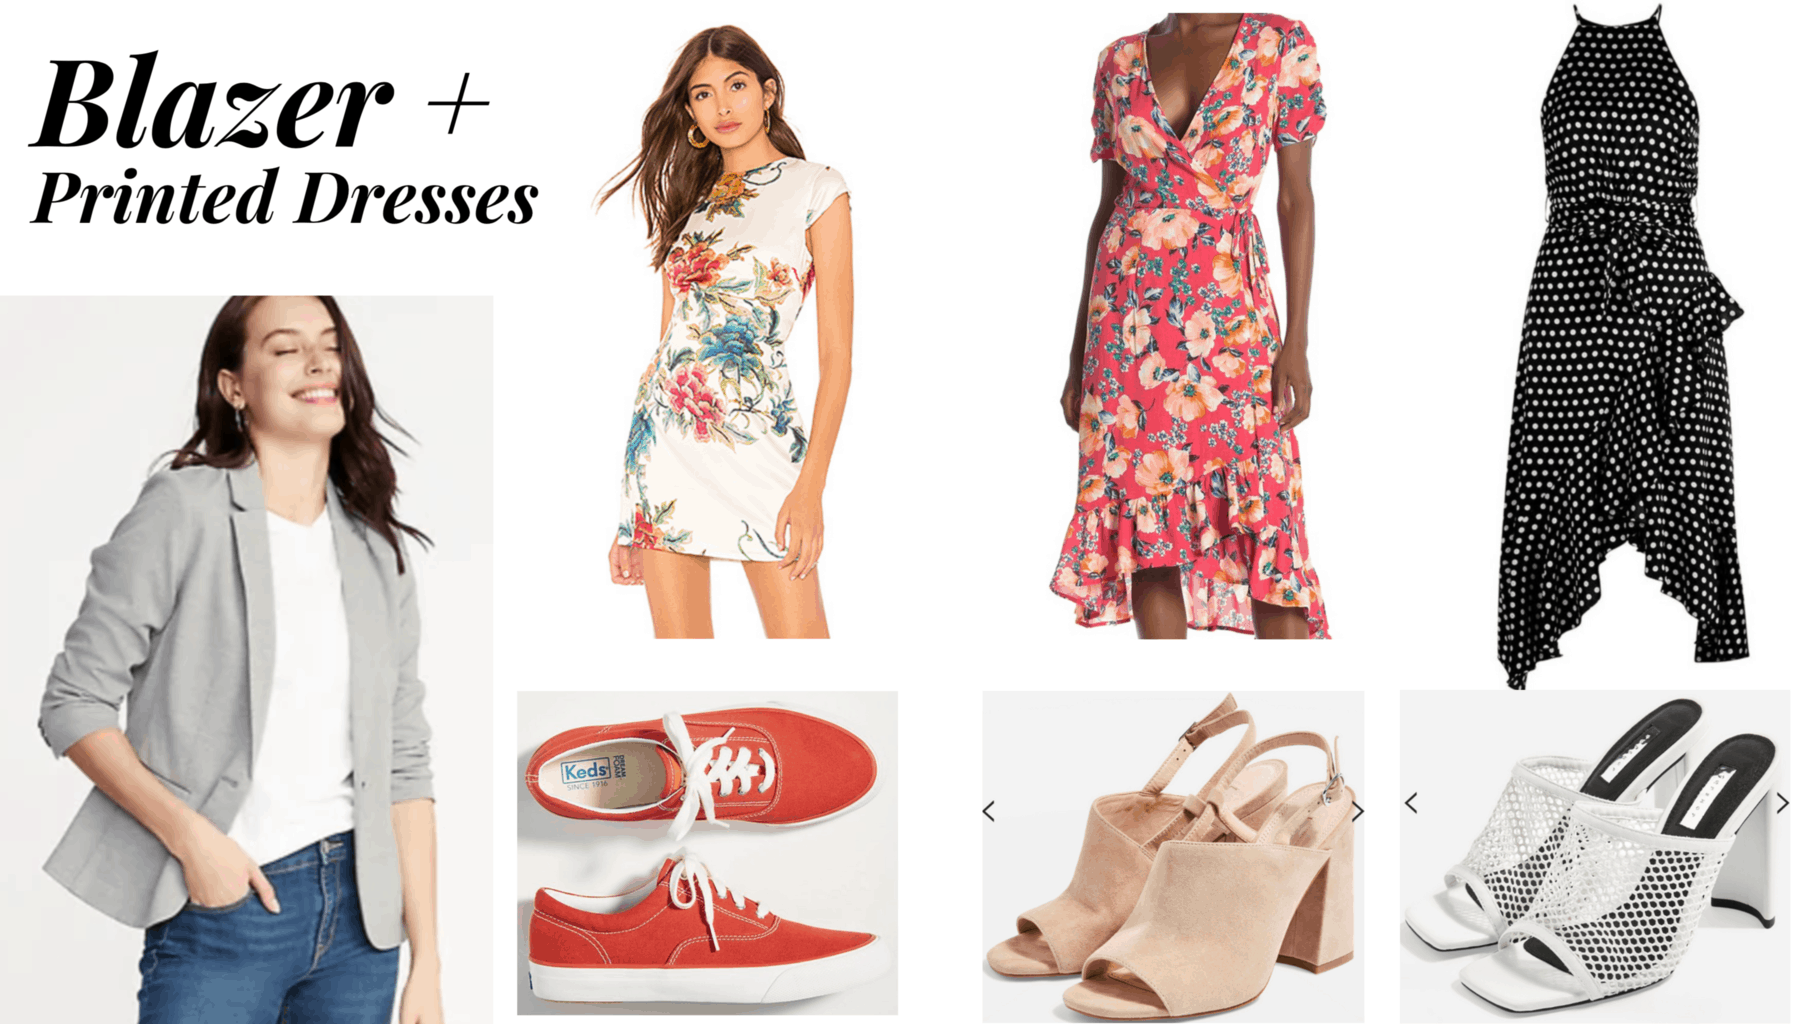 outfit panel with grey blazer, 3 printed dresses, sneakers, and 2 heels